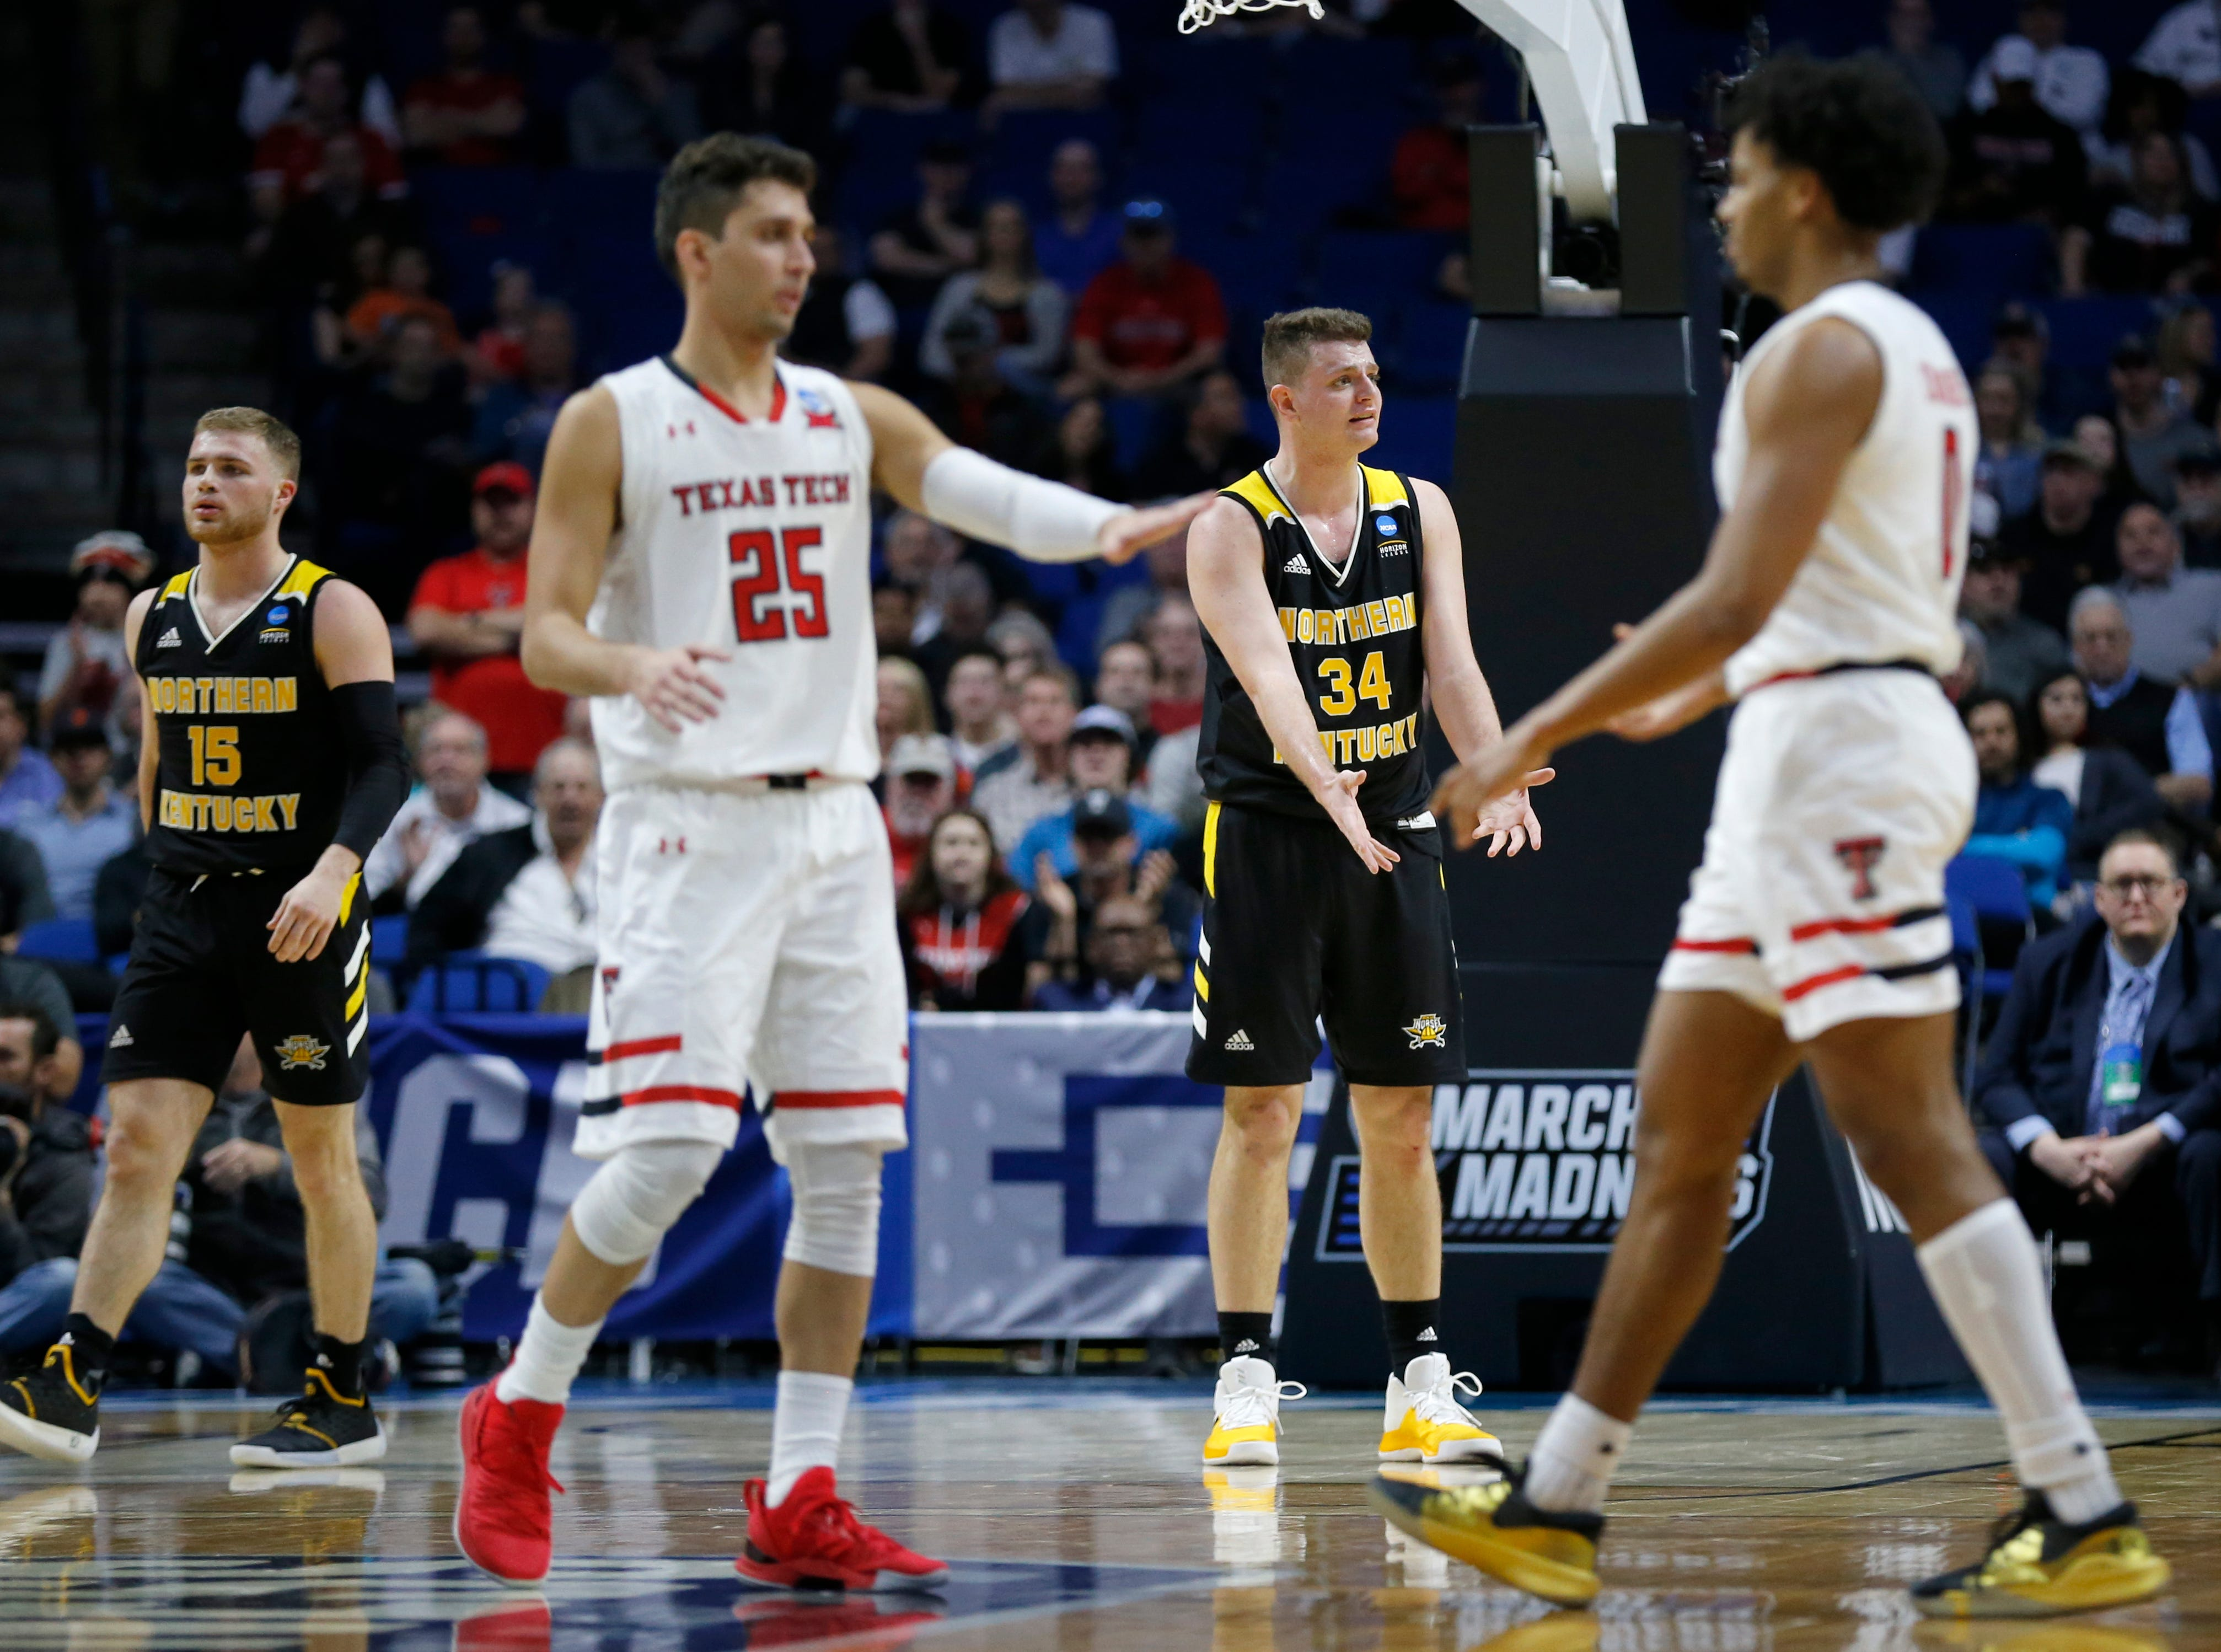 Northern Kentucky Norse forward Drew McDonald (34) reacts to a foul called against him in the first half of the NCAA Tournament First Round game between the 14-seeded Northern Kentucky Norse and the 3-seeded Texas Tech Red Raiders the BOK Center in downtown Tulsa on Friday, March 22, 2019. Texas Tech led 30-26 at halftime.